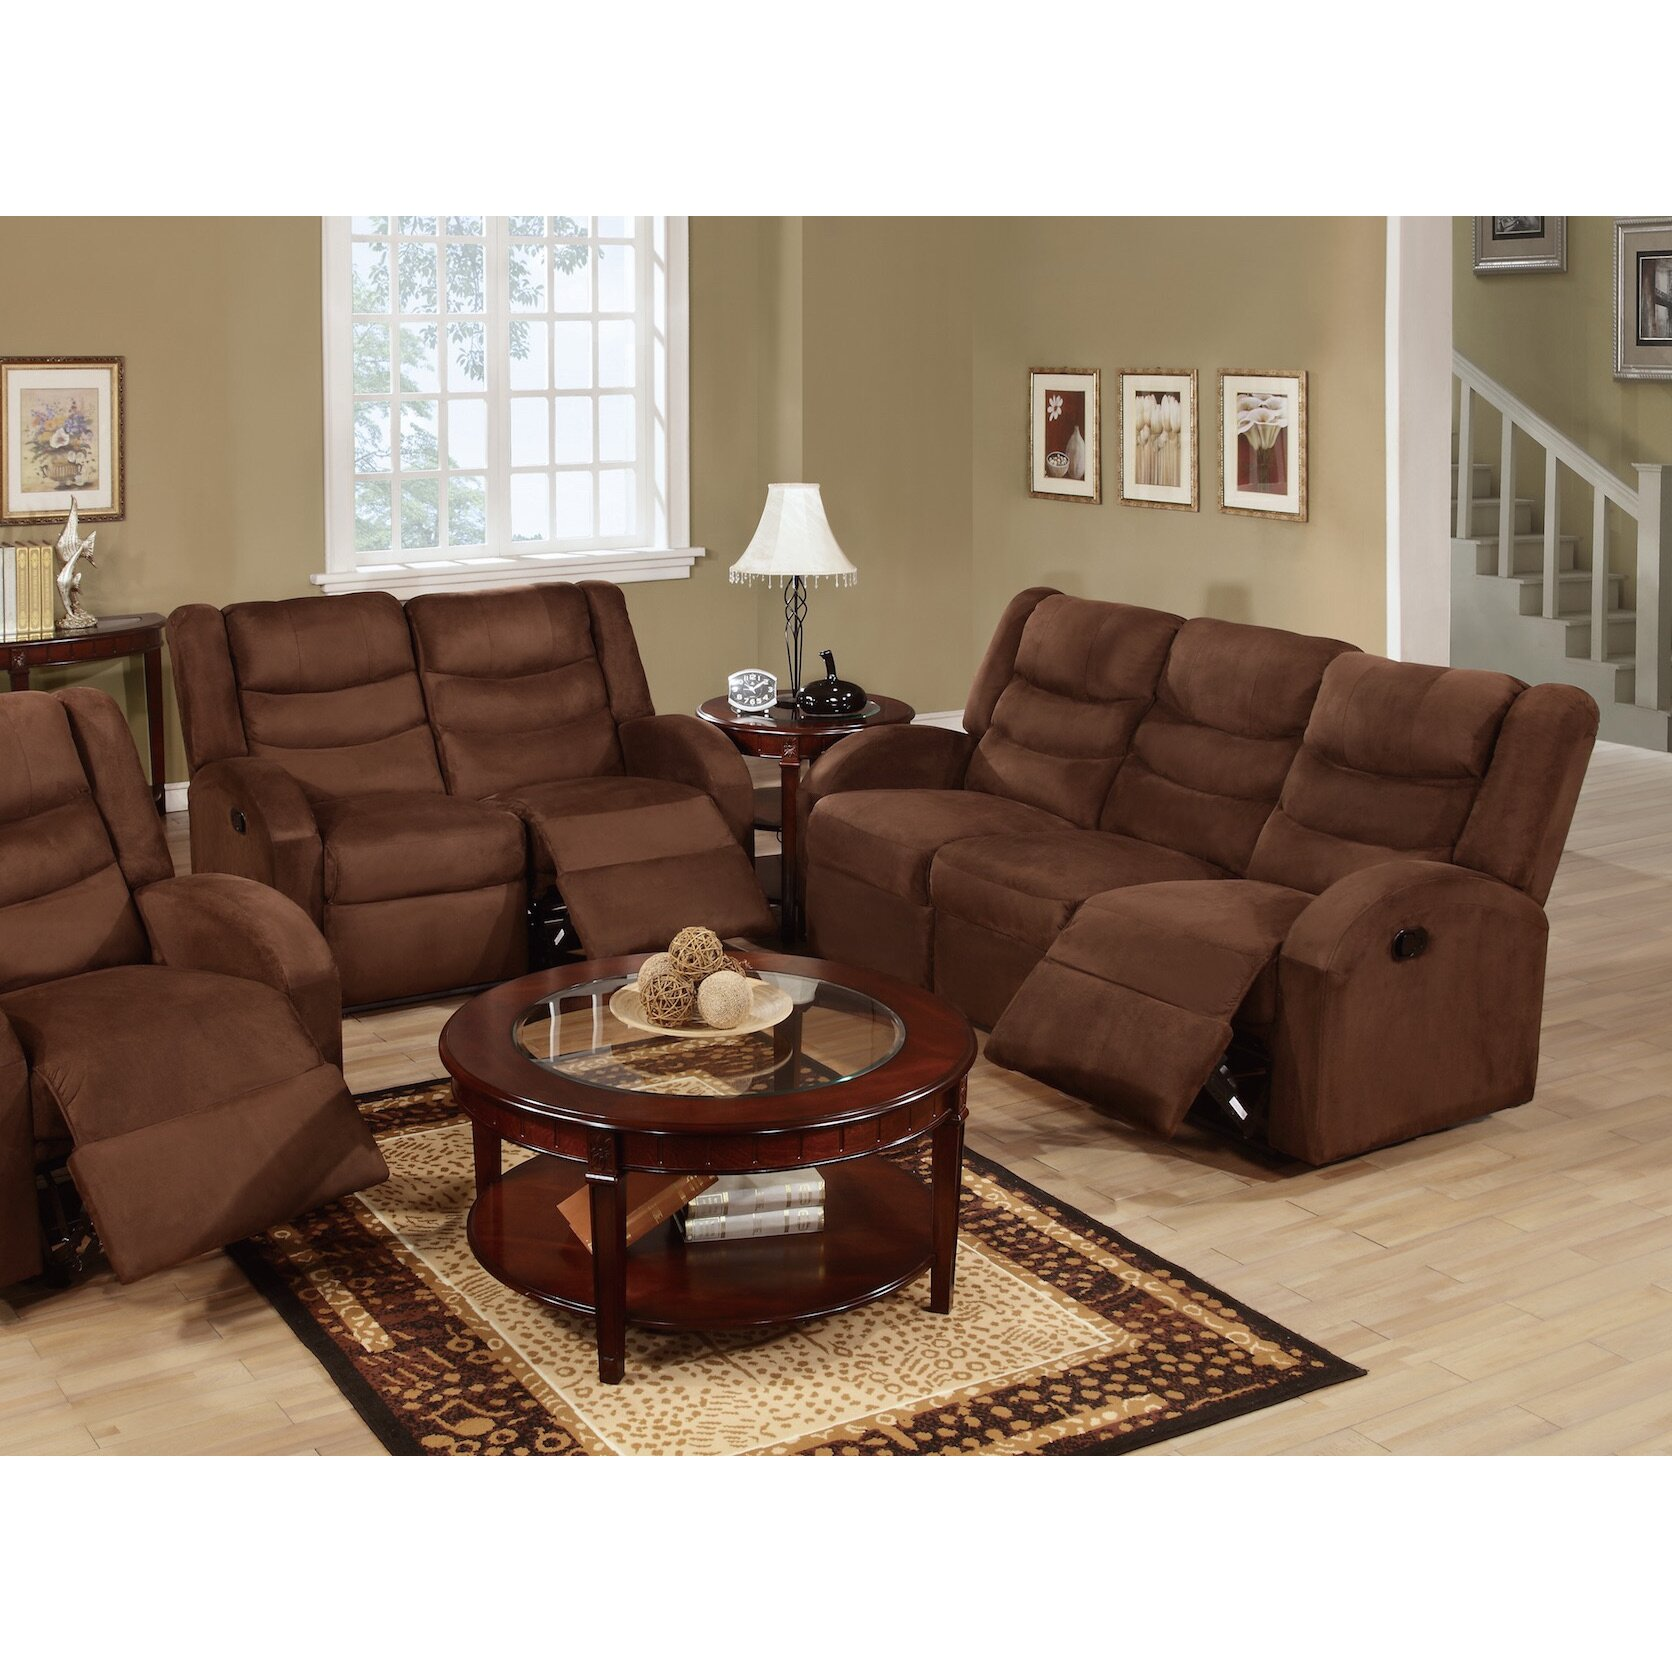 Reclining sofas and loveseats sets living room reclining microfiber sofa and loveseat set Microfiber sofa and loveseat set